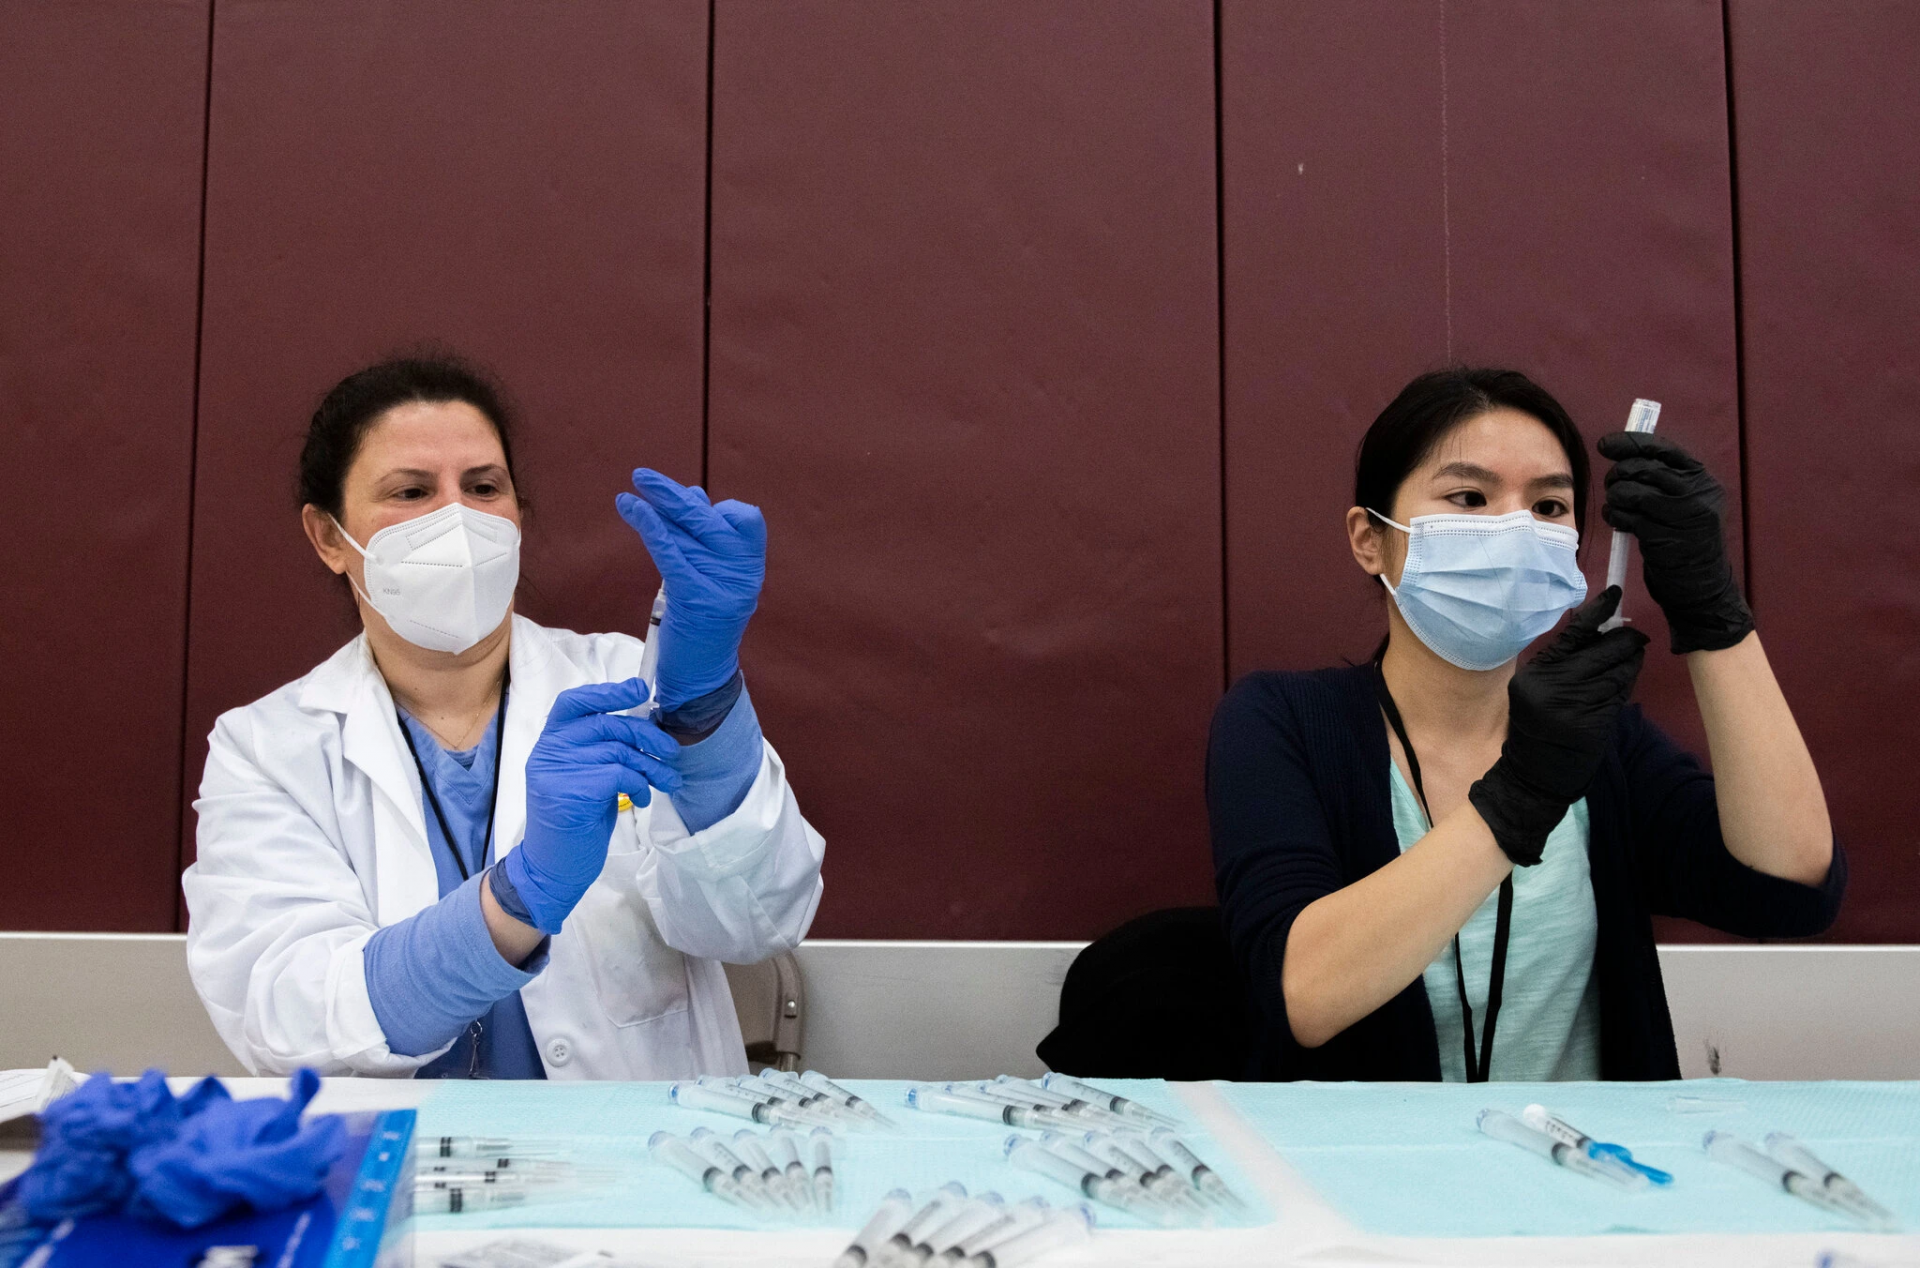 Pharmacists prepared syringes with the Johnson & Johnson vaccine in Detroit on Monday. More than seven million people in the United States have received the vaccine.Credit...Nicole Hester/Ann Arbor News, via Associated Press